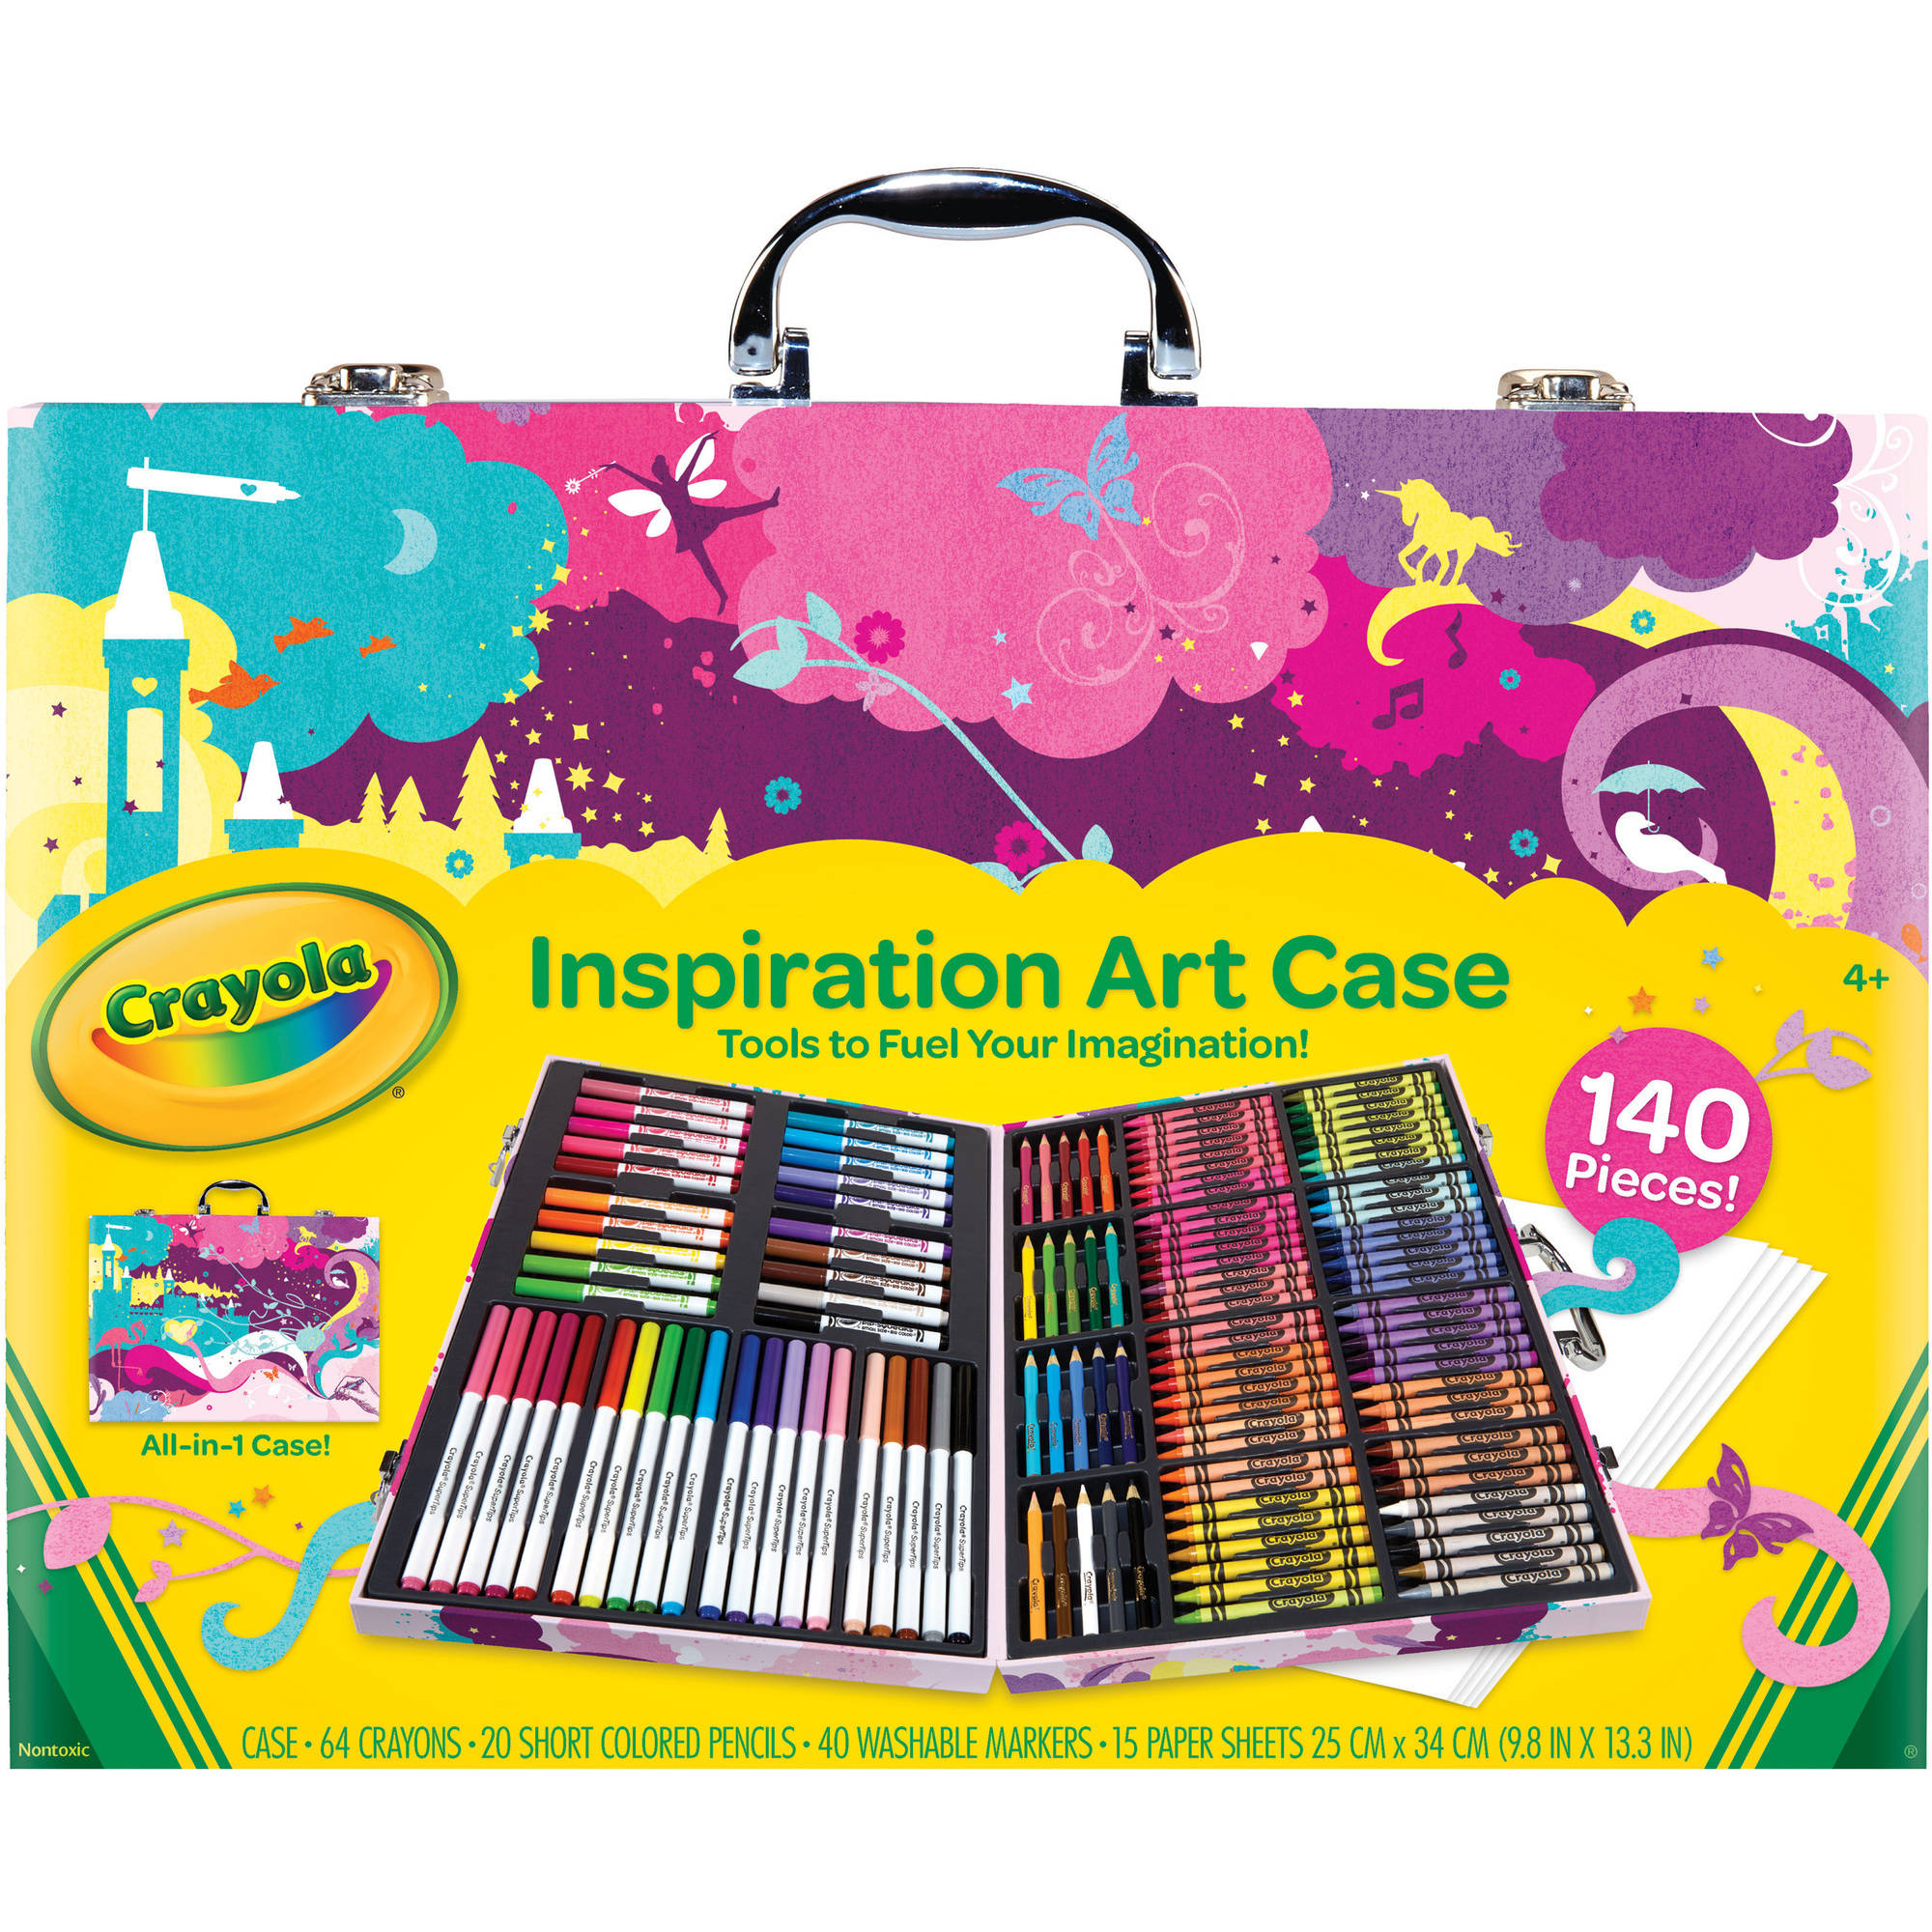 Crayola Inspiration Art Case, Pink, 140 Piece Art Kit, Gift